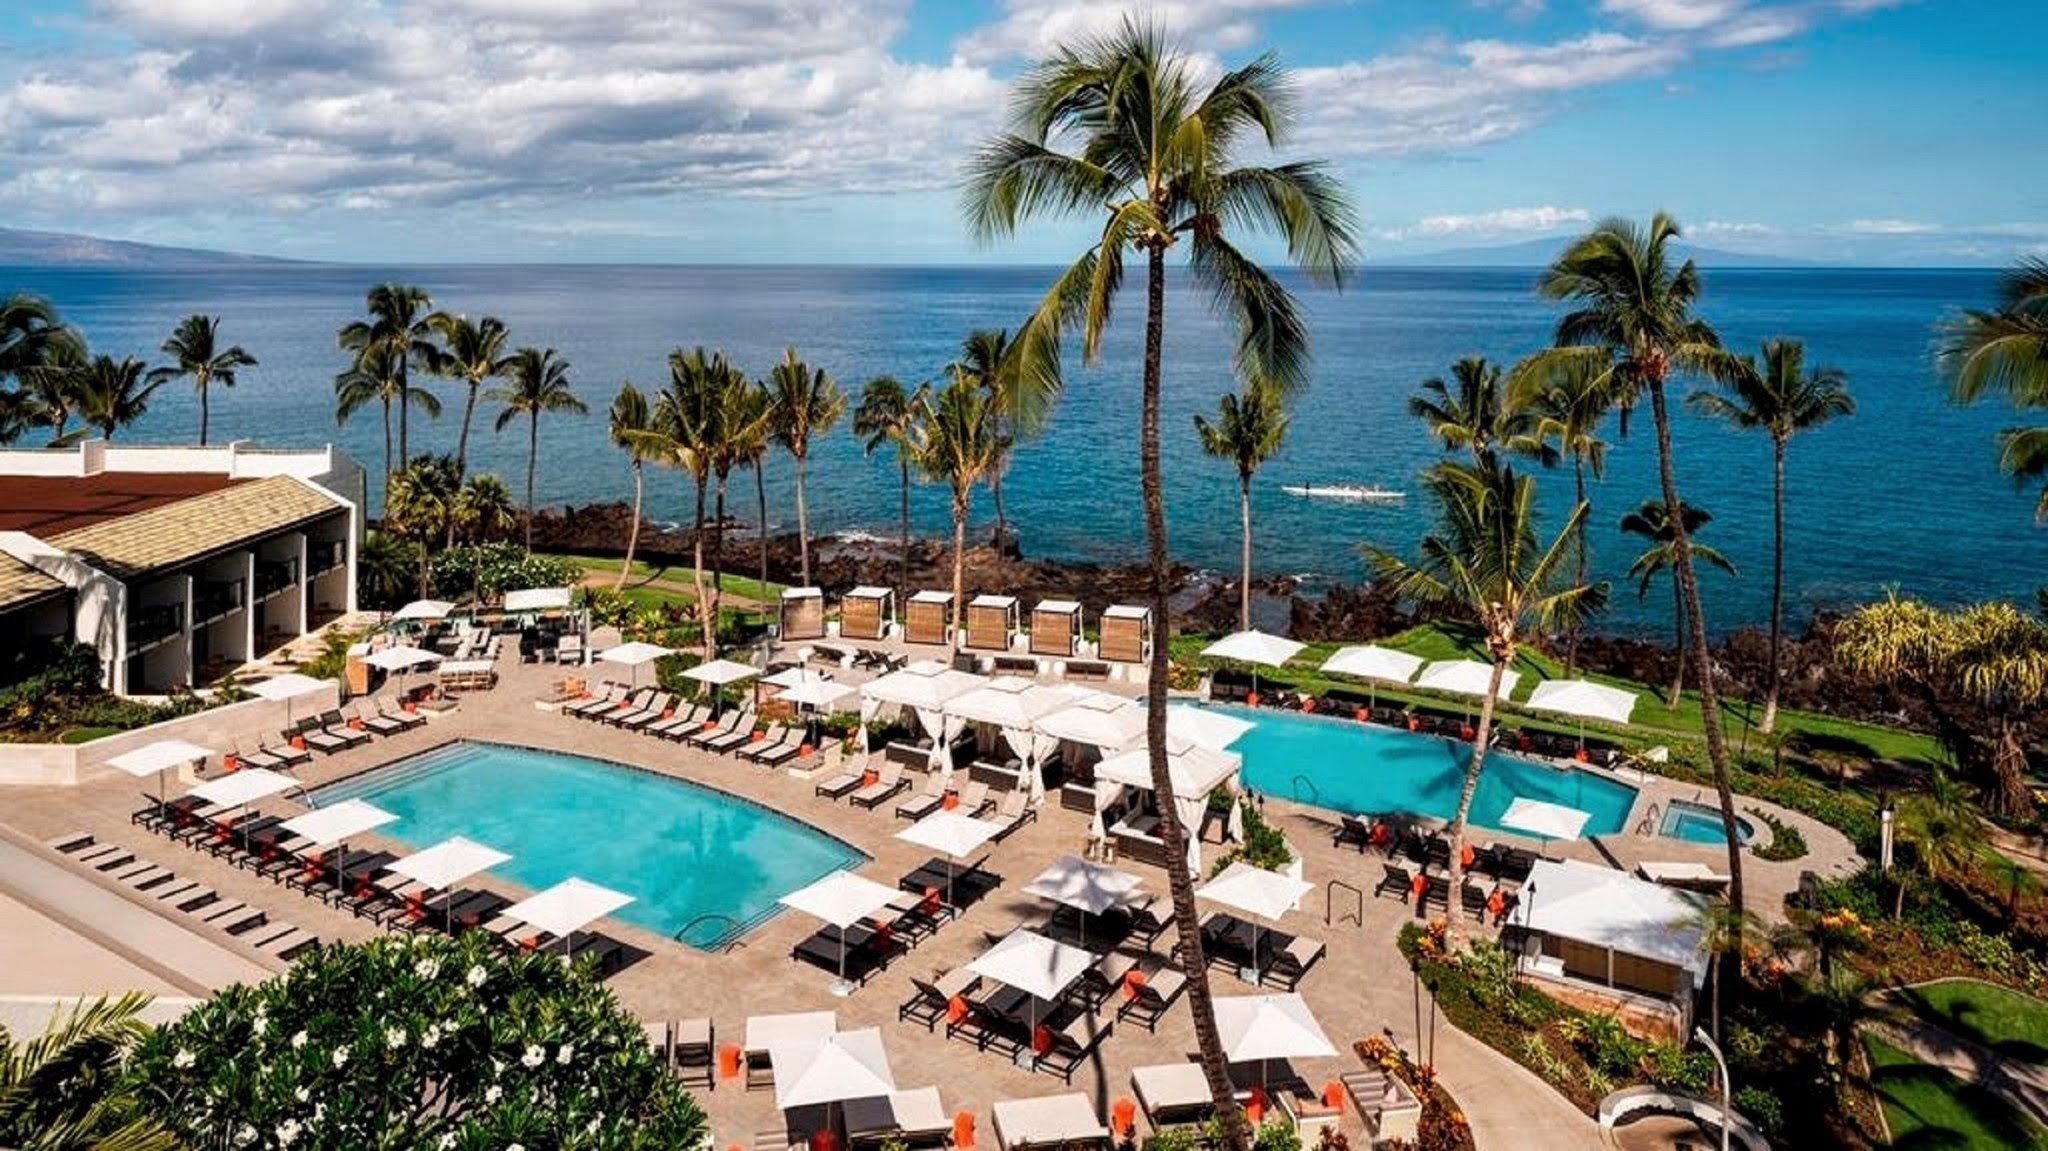 Marriotts Wailea Beach Resort on Maui unveils its 100